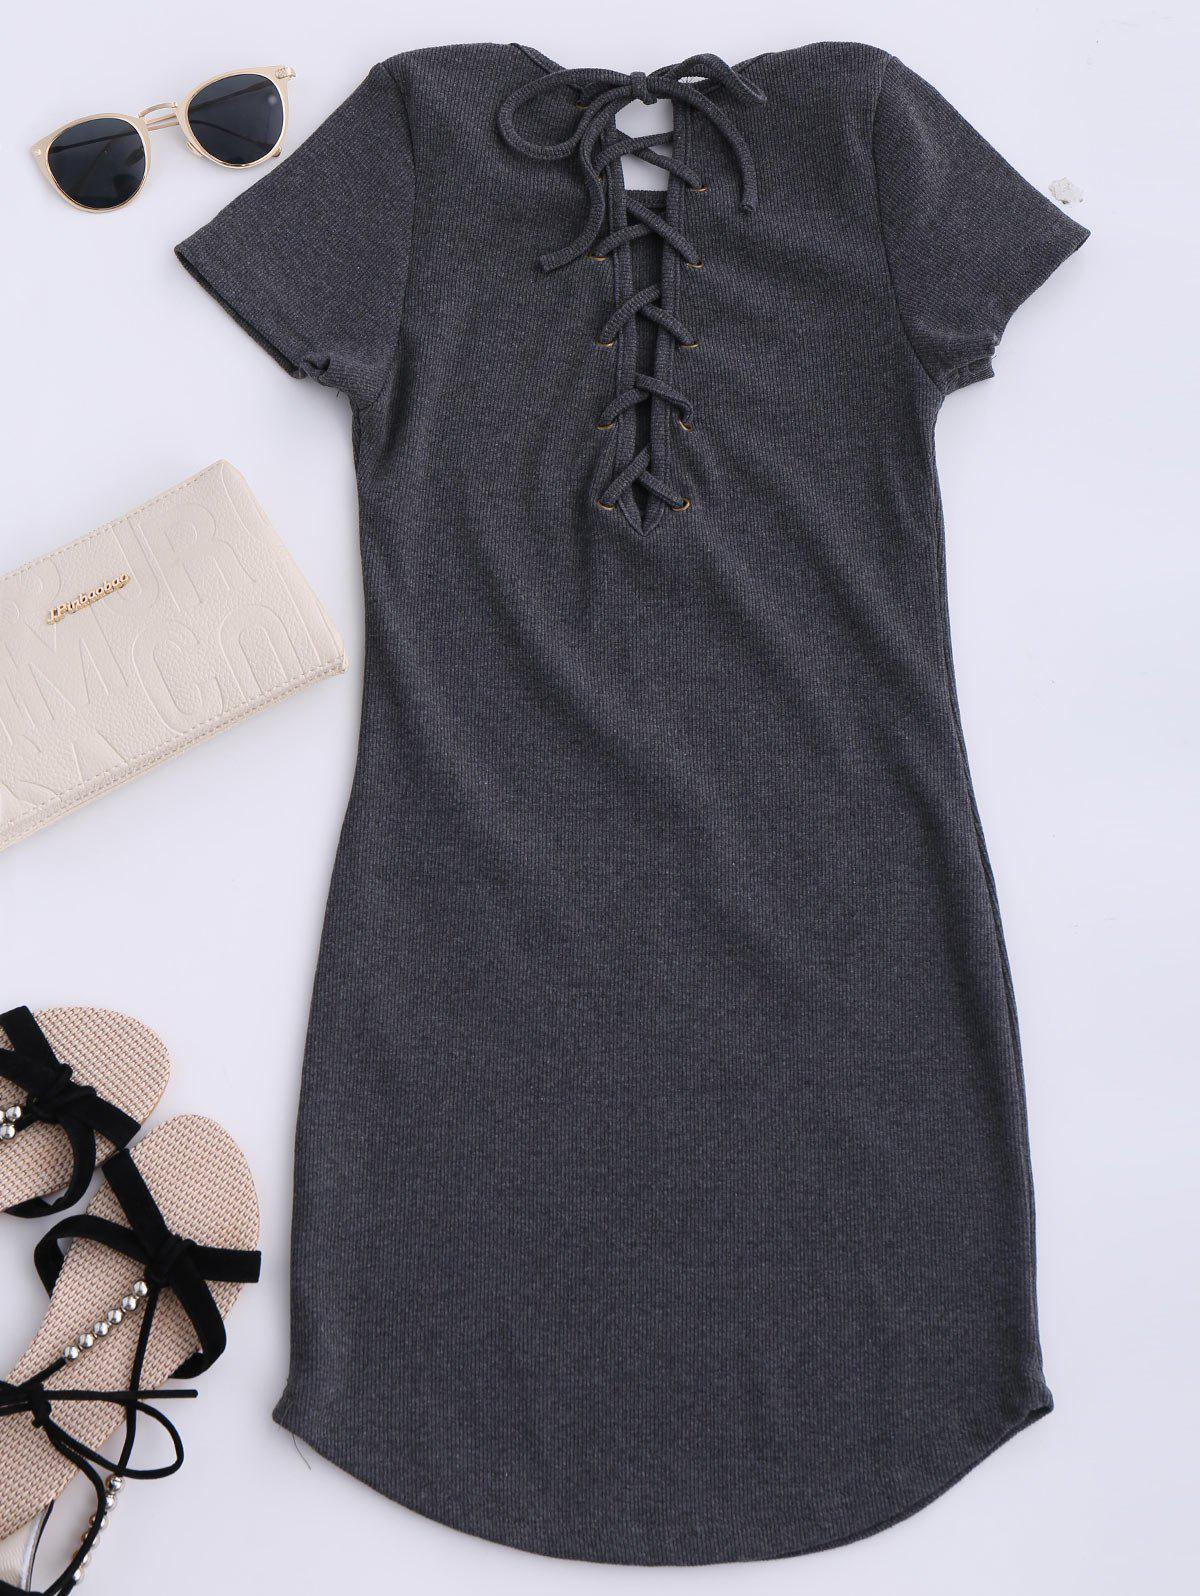 2018 Lace Up Mini Short Sleeve Jumper Dress In Gray One Size ... d9c7a3e26